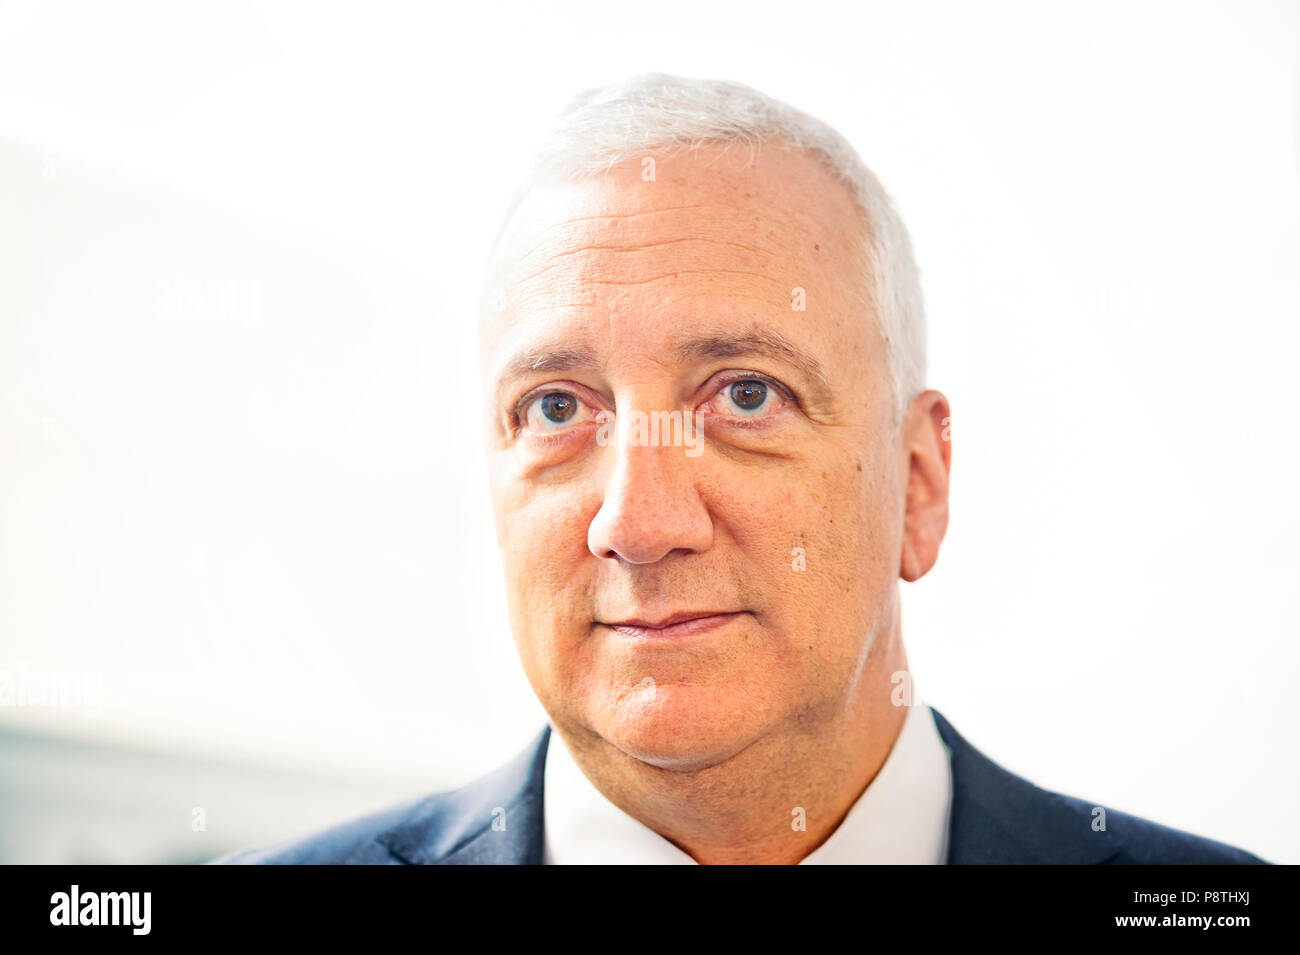 Garden City, New York, USA. June 21, 2018. Closeup of MIKE MASSIMINO, former NASA space shuttle astronaut, who is inducted into Long Island Air & Space Hall of Fame Class of 2018 at Cradle of Aviation Museum. - Stock Image